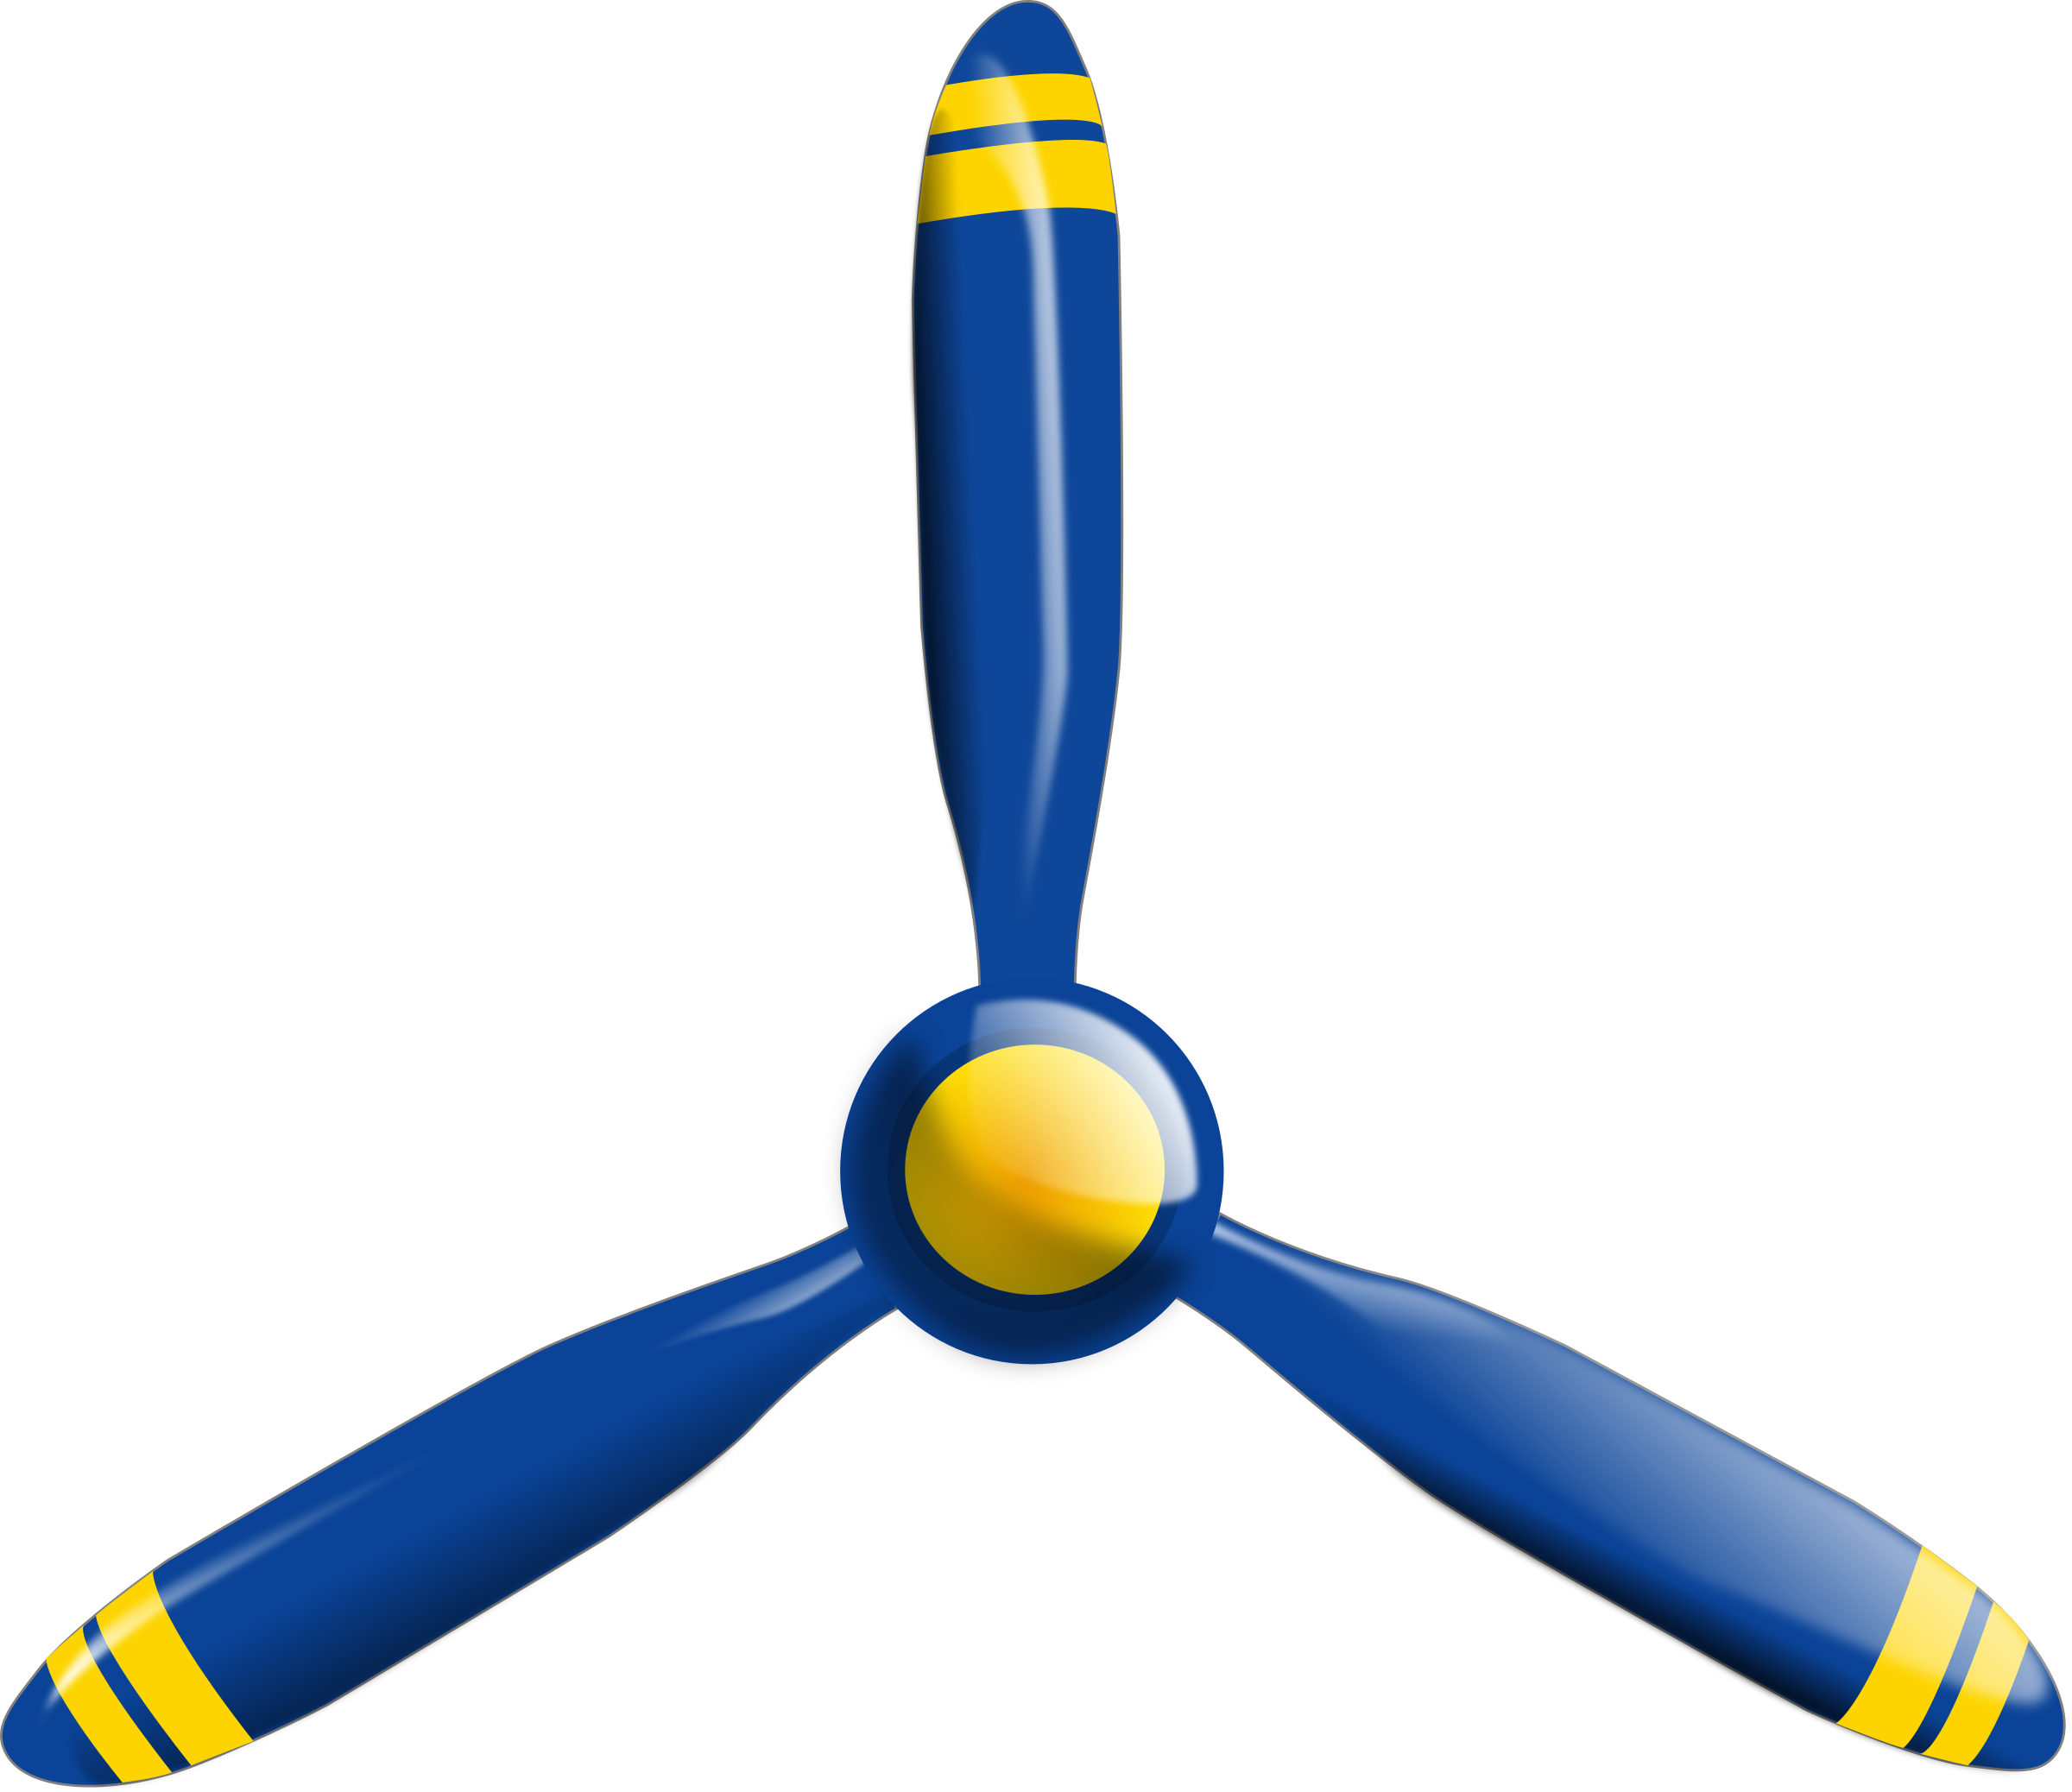 Propeller by Eggib